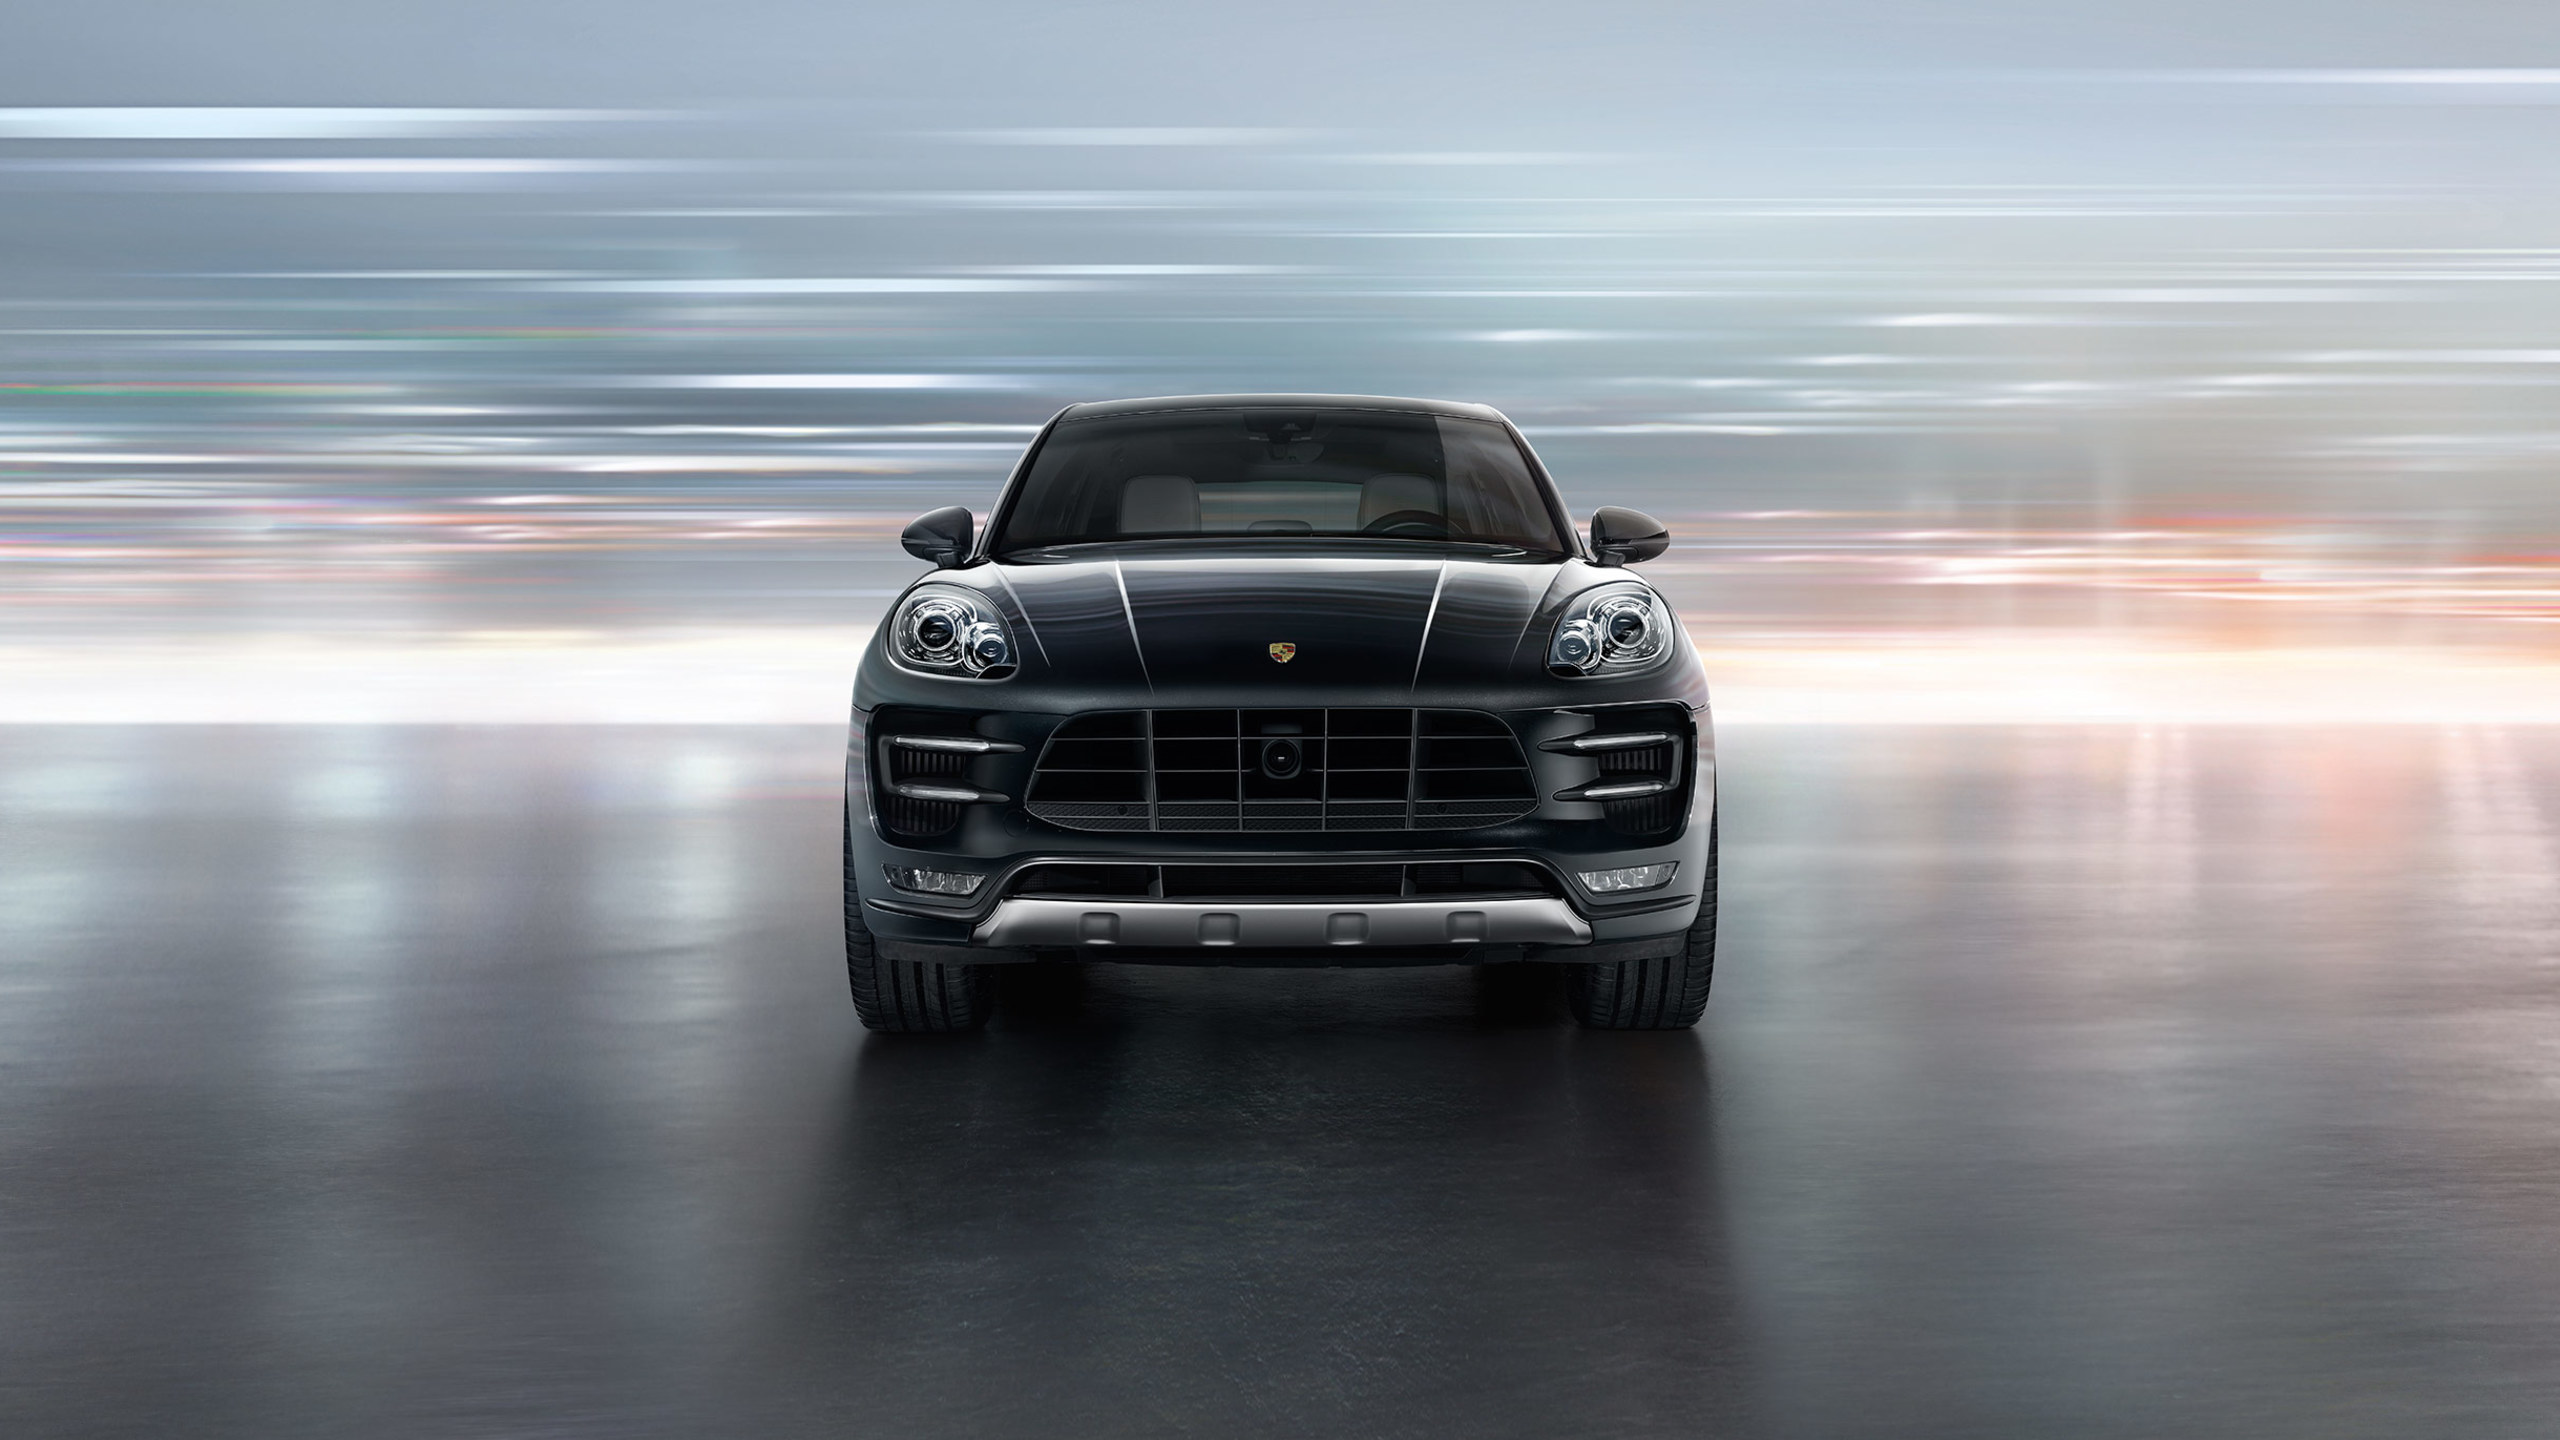 Моделі Porsche Macan Turbo